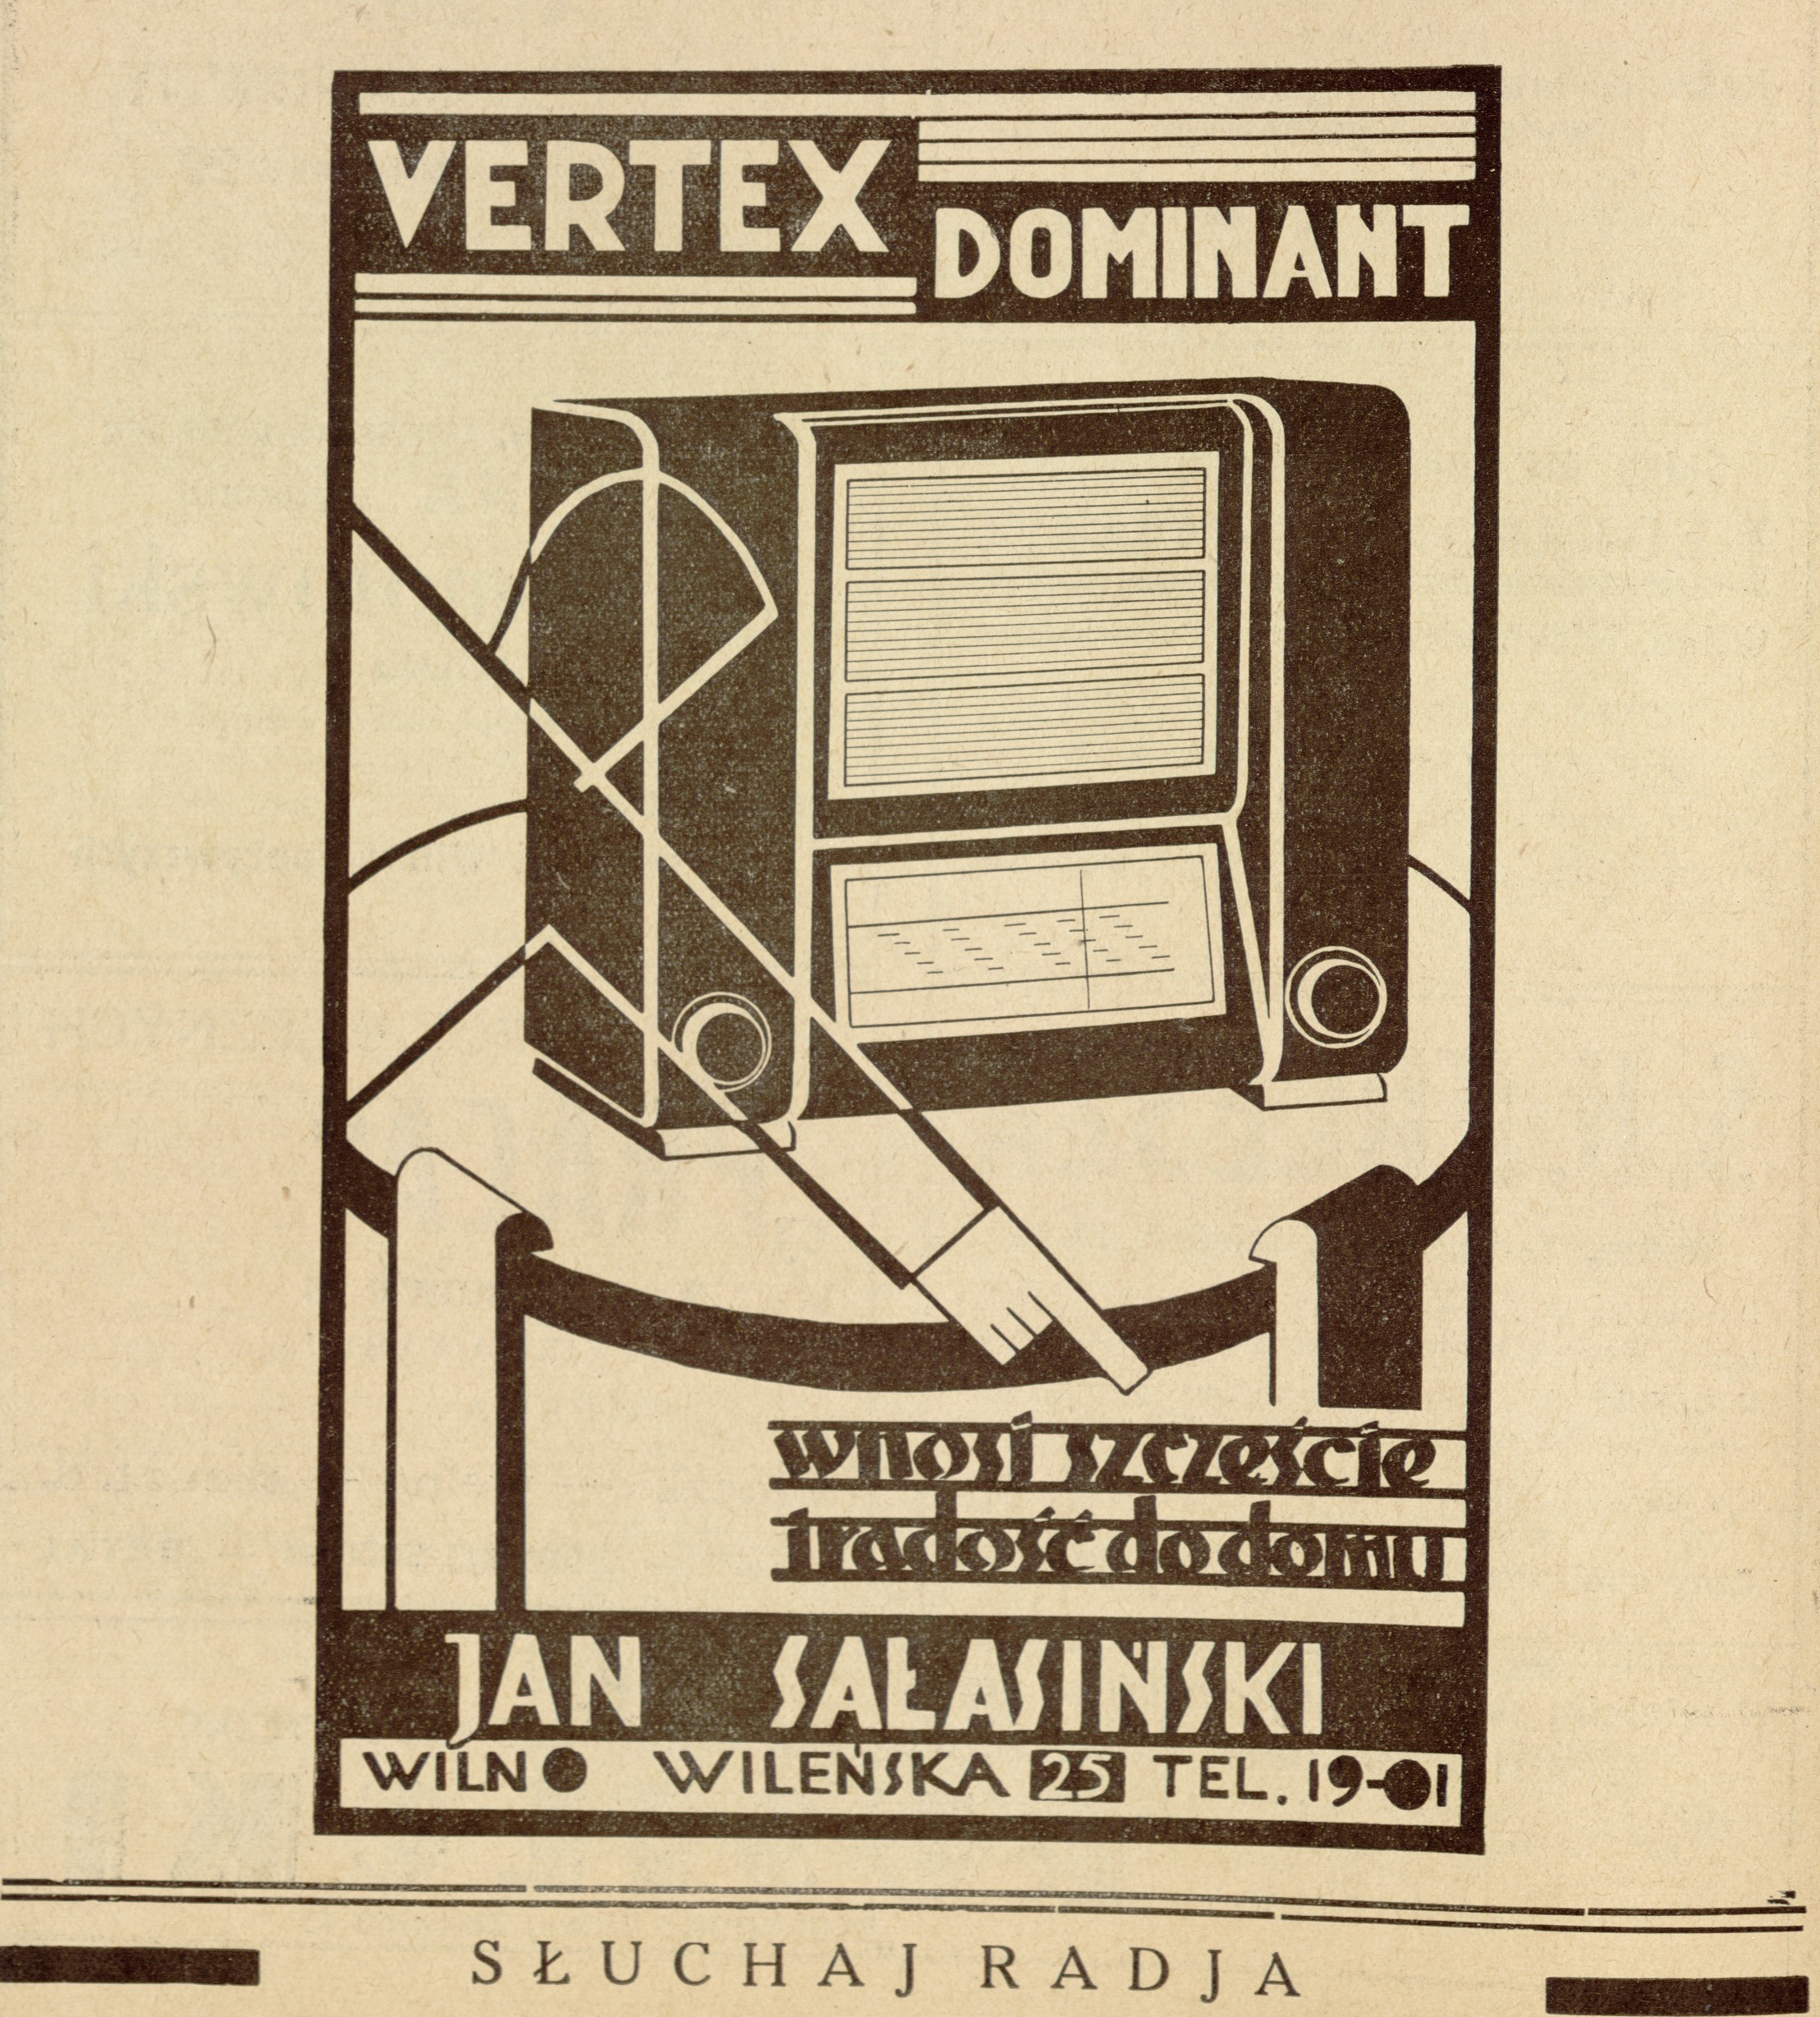 Vertex dominant, Jan Sałasiński